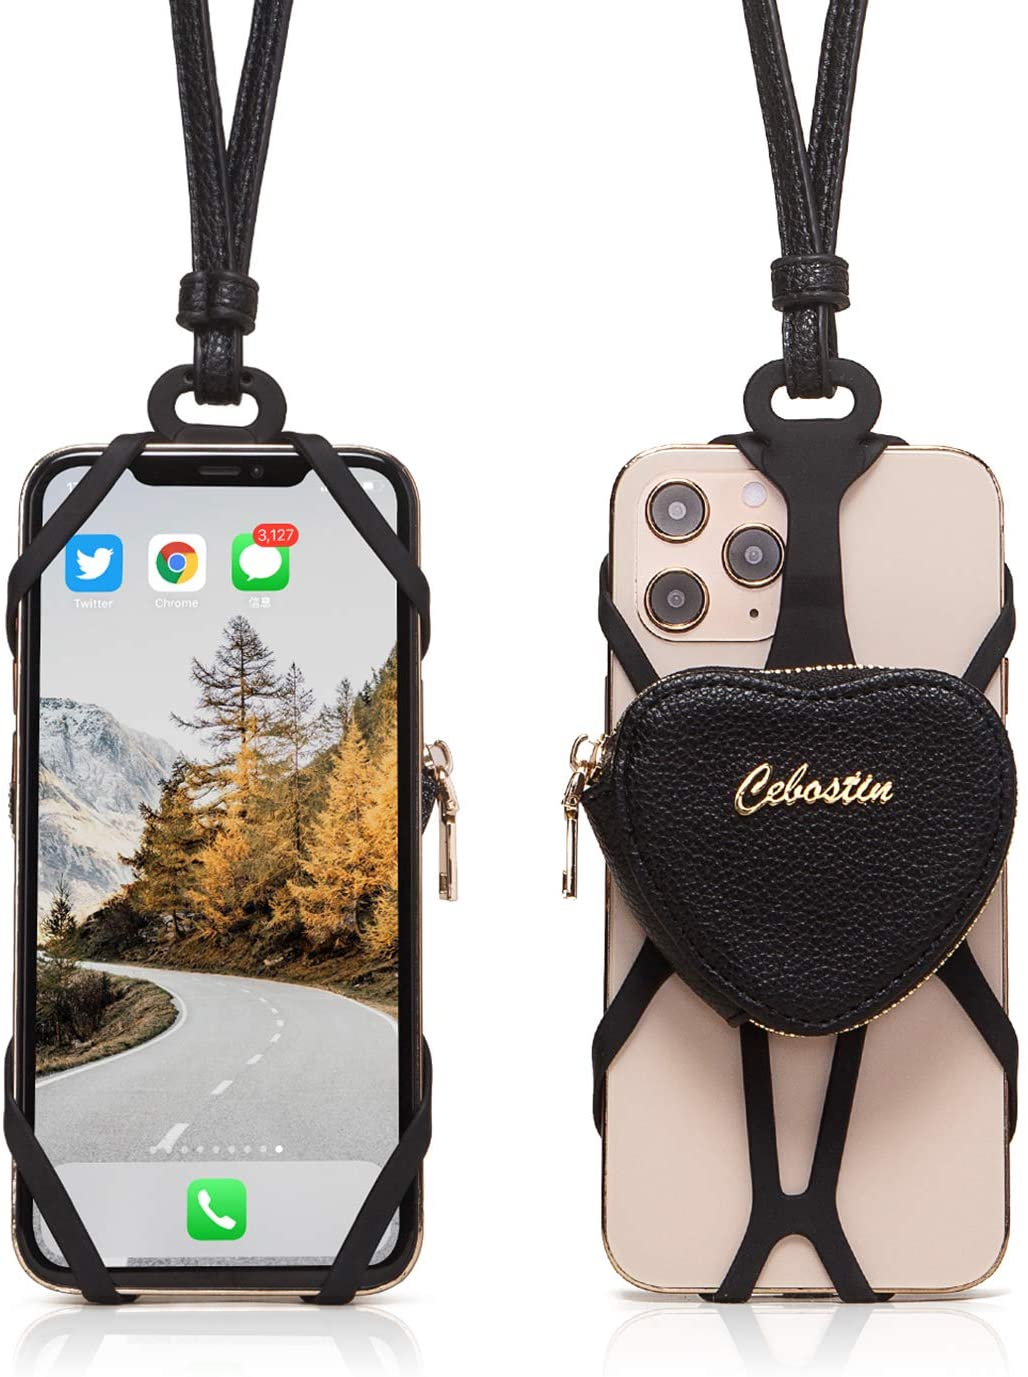 Cebostin Lanyard Silicone Phone Holder, Universal Cell Phone Lanyard Case, PU Leather Heart AirPods Case Coin Purse Wallet Neck Strap Smartphone Case (Black)